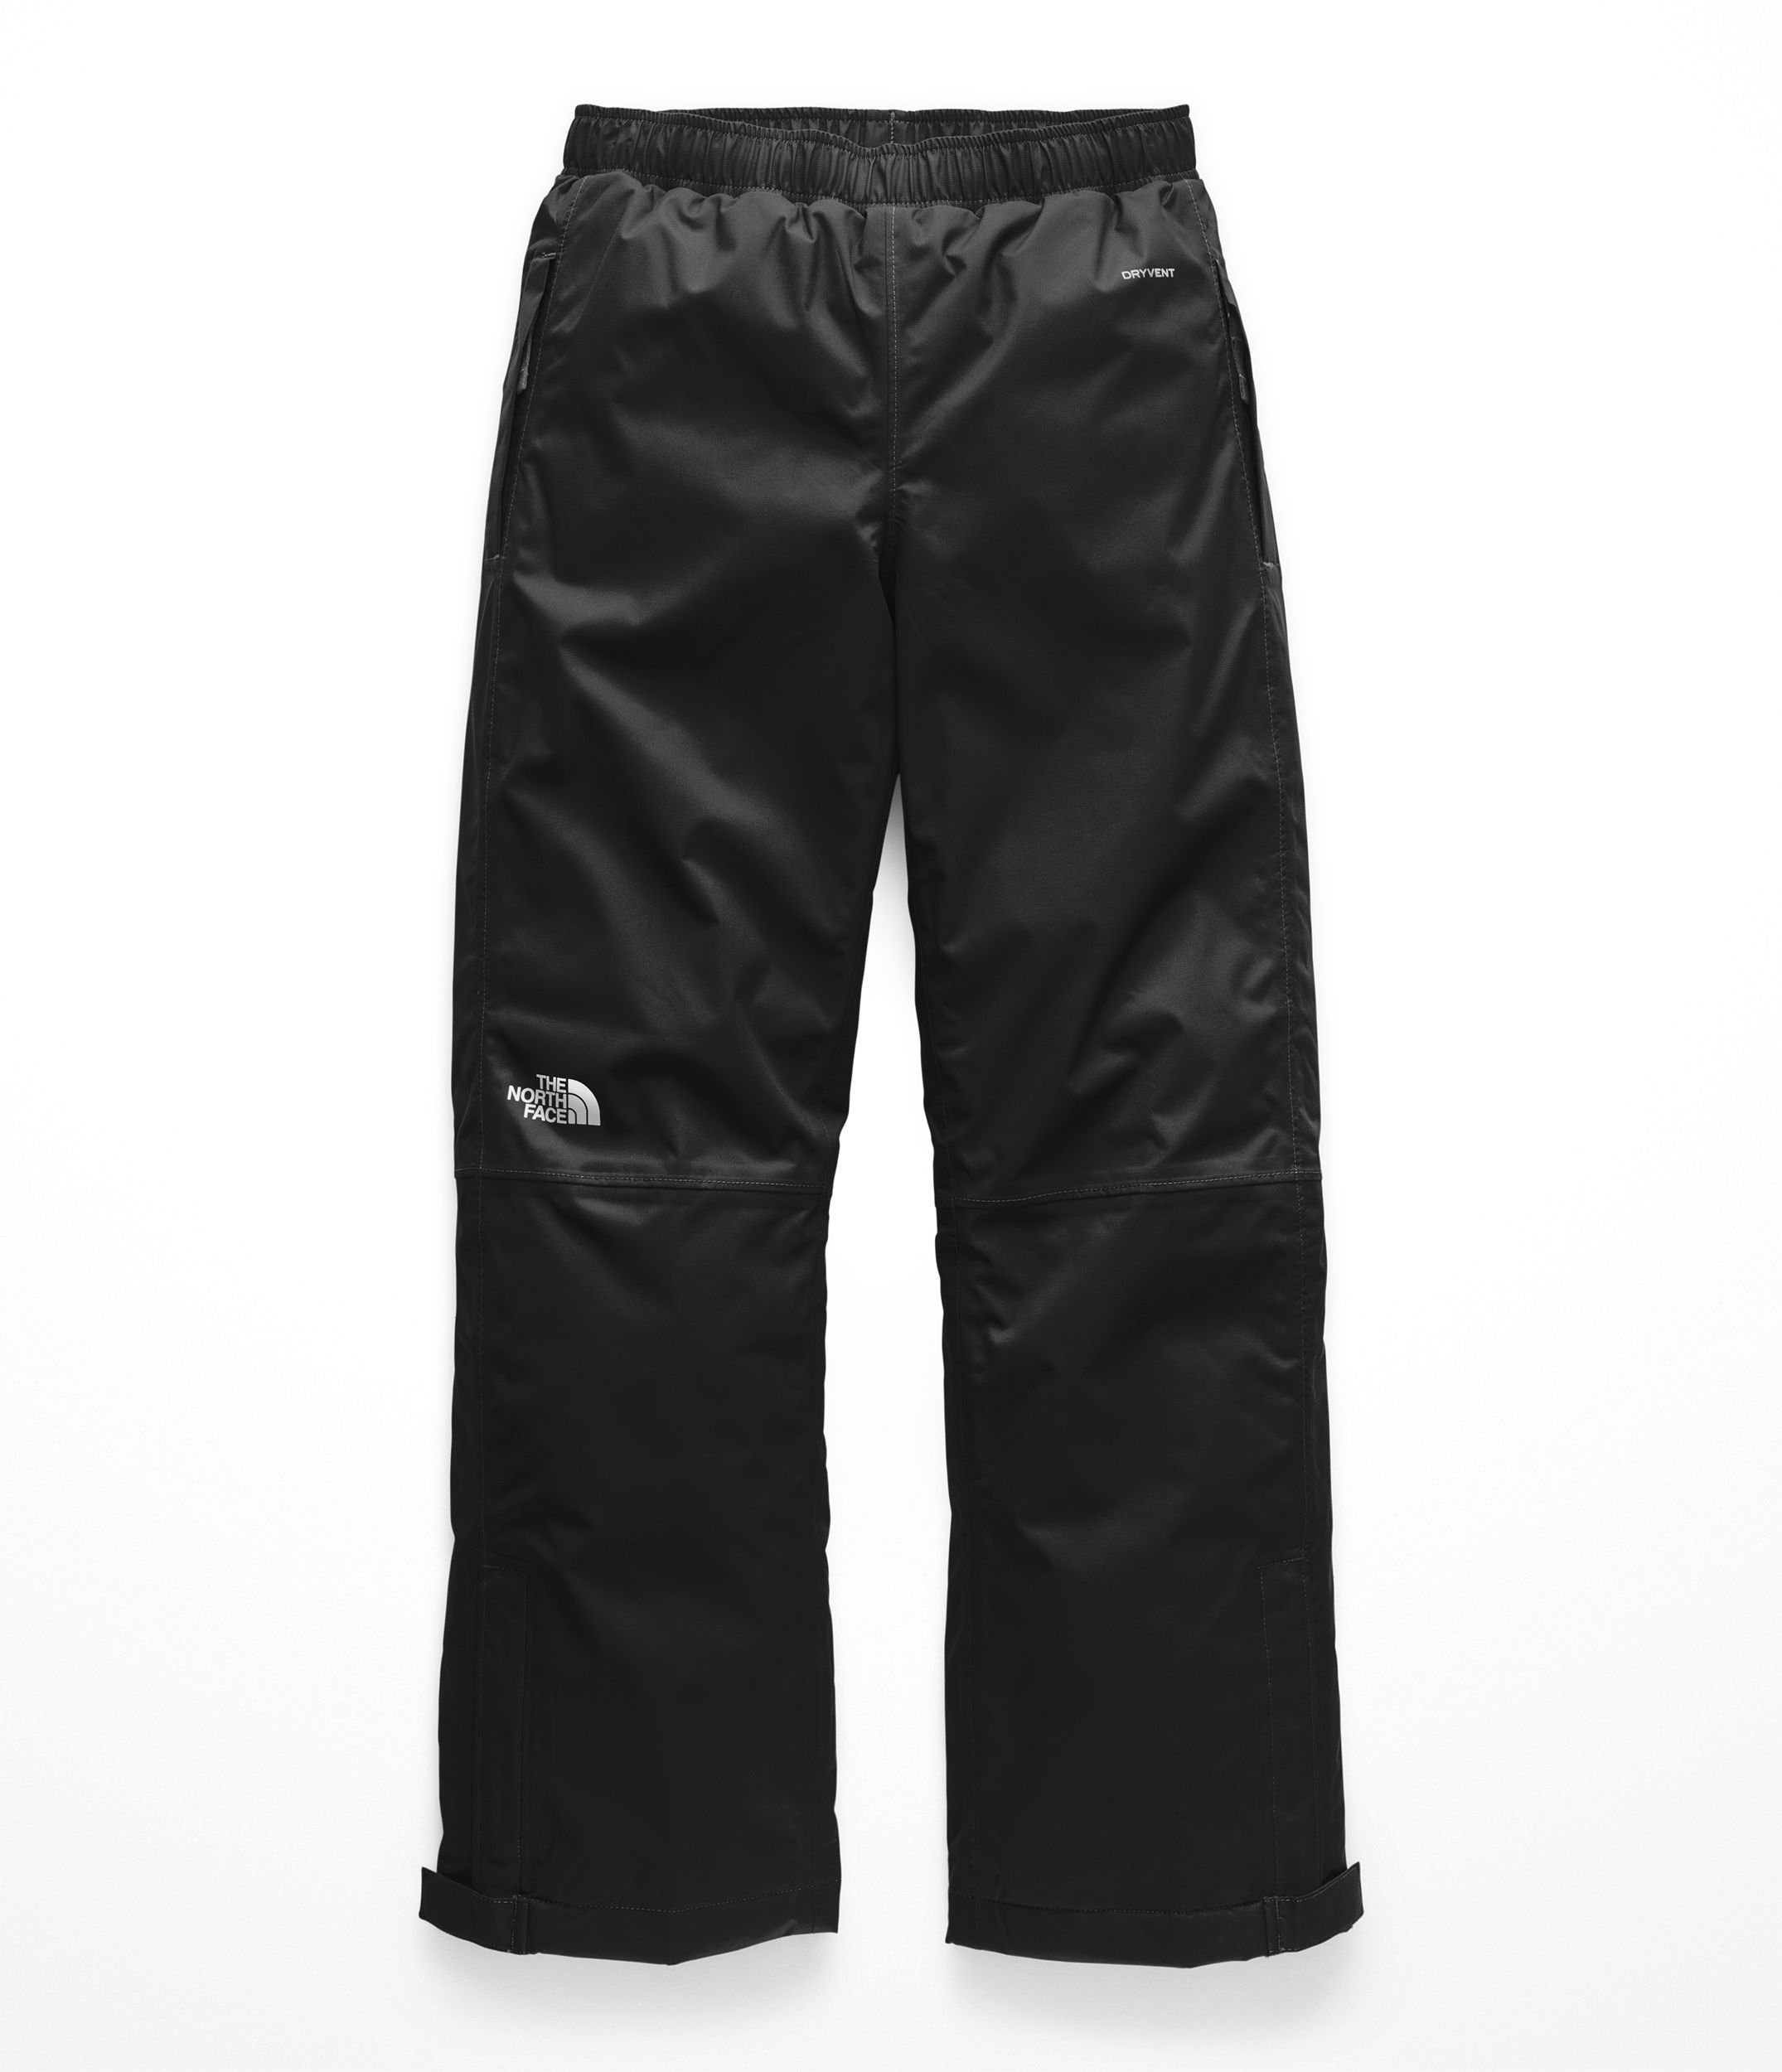 The North Face Kids Boy's Resolved Insulated Pants (Little Kids/Big Kids) TNF Black Large